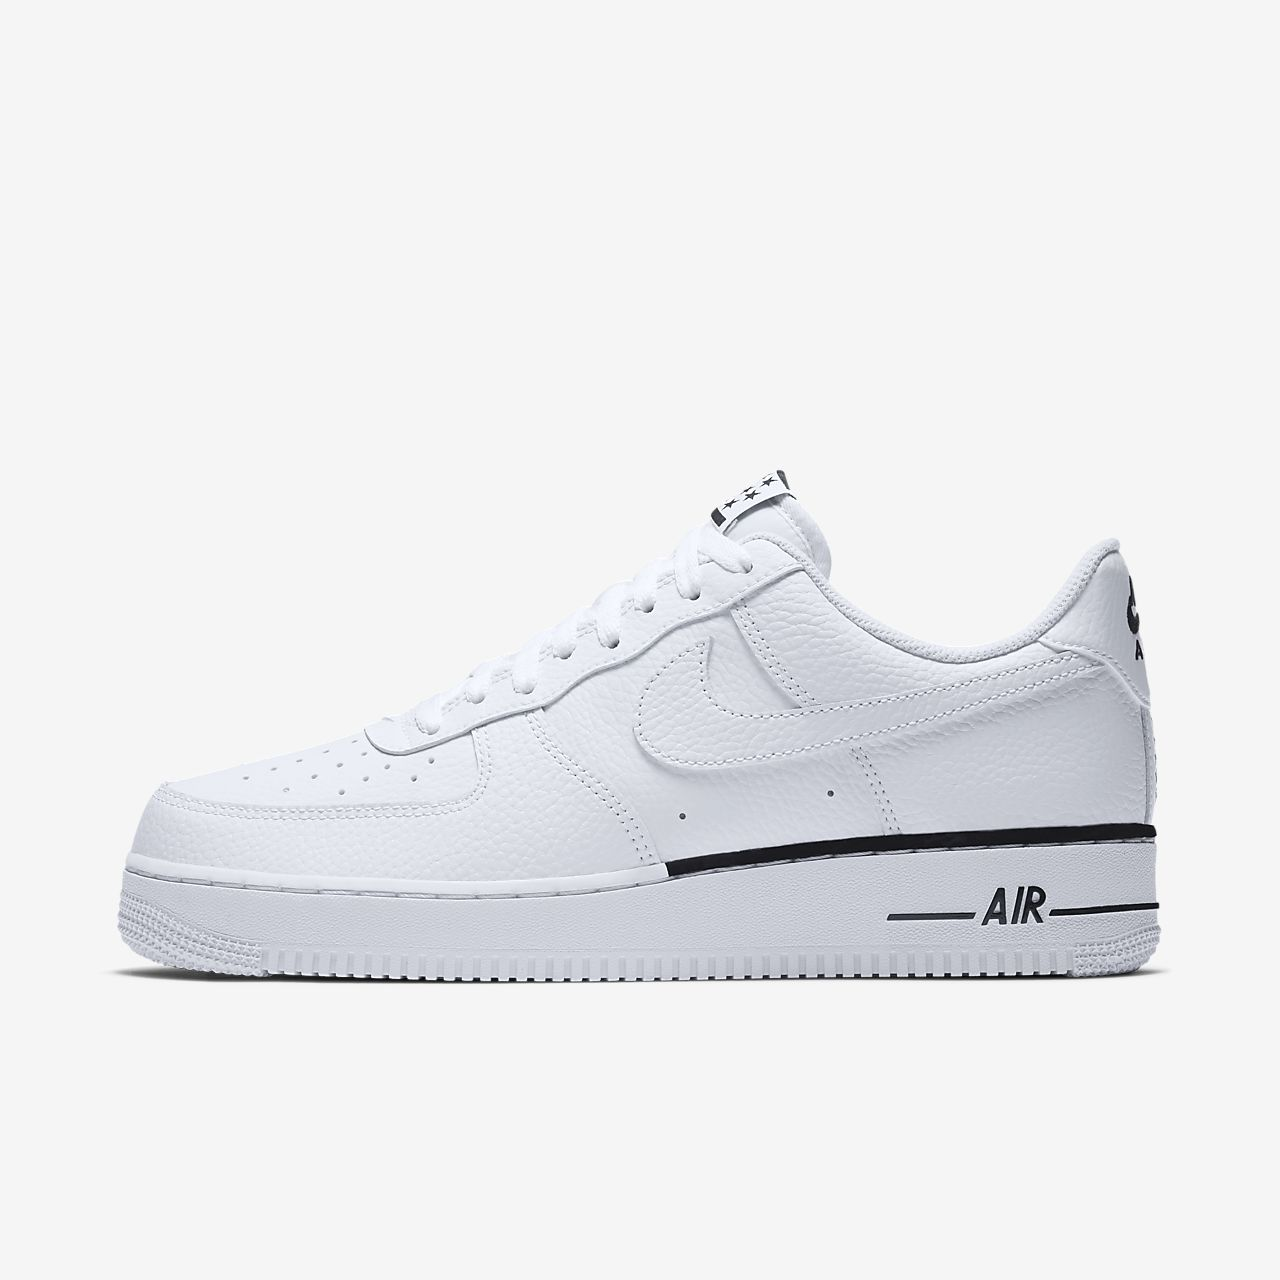 Nike 'Air Force 1 '07' sneakers rp0cUrn6O